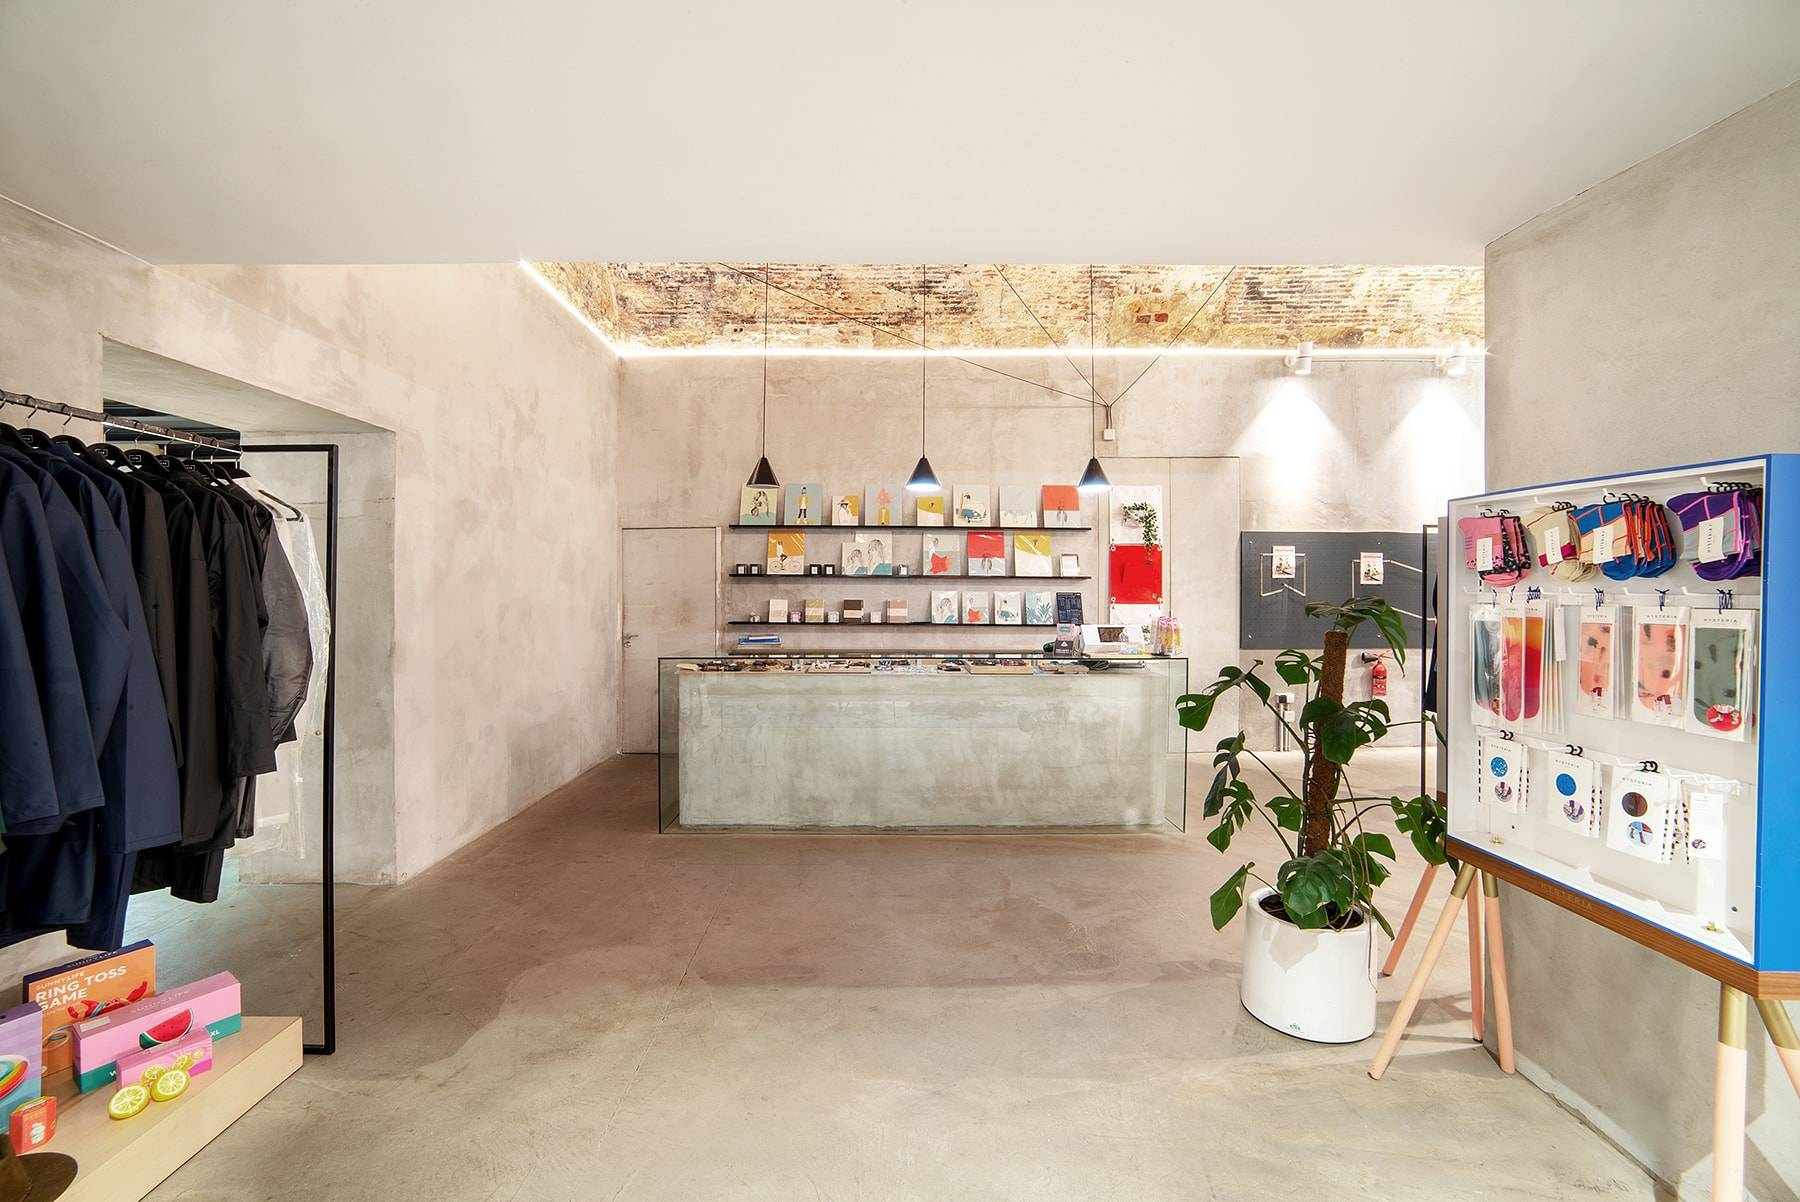 View of the interior at The Feeting Room concept store in Chiado Lisboa